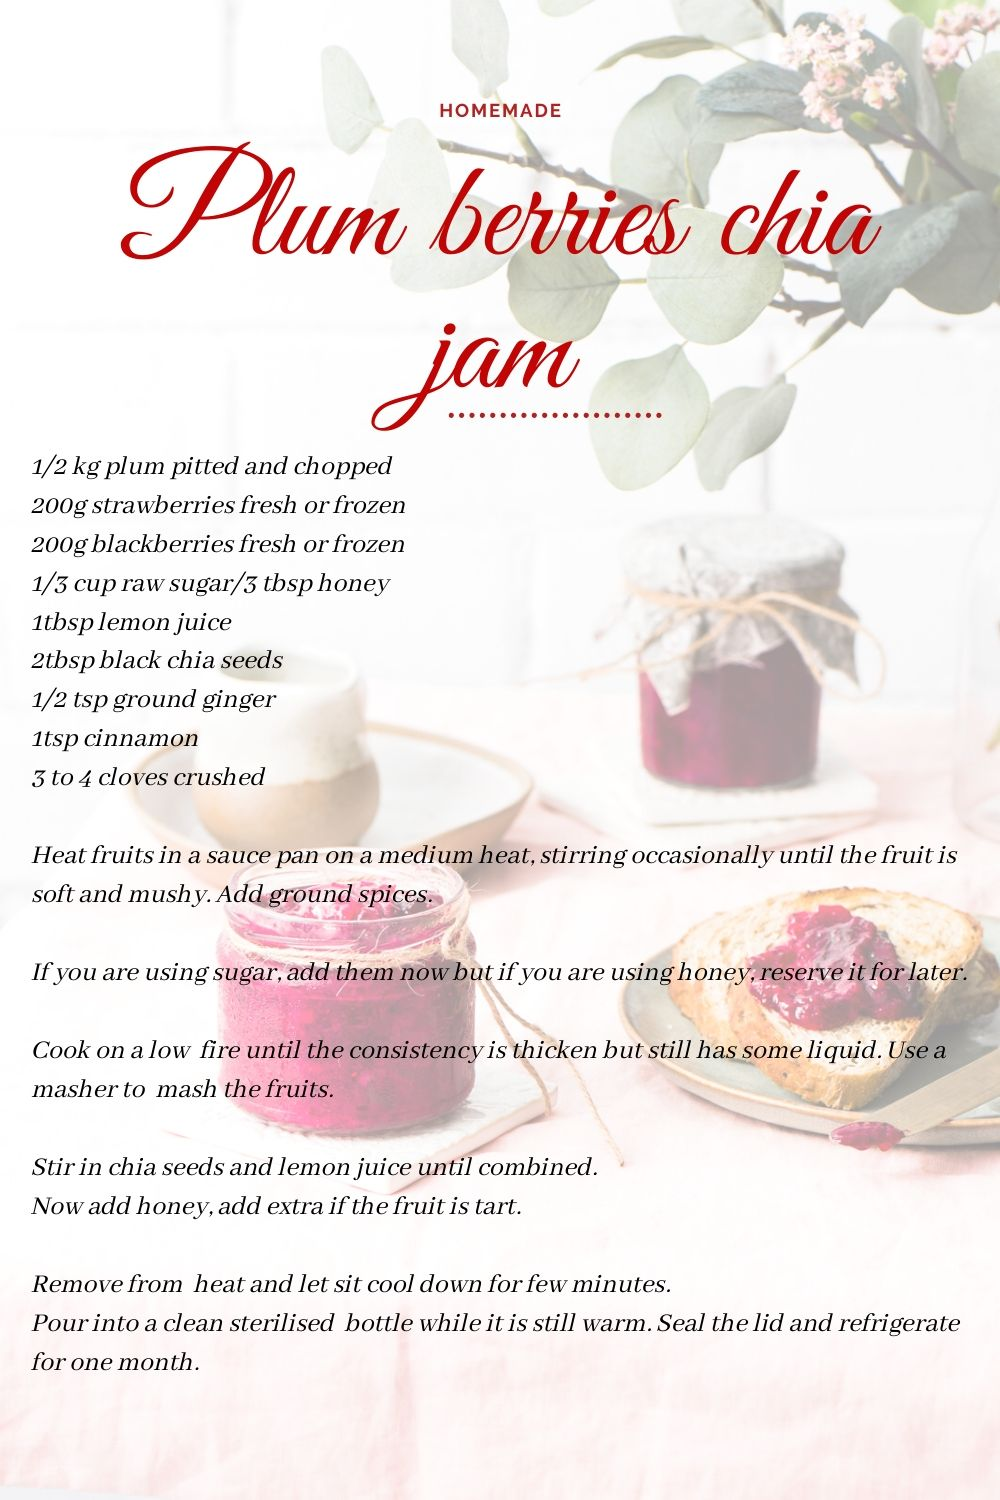 Plum, berry chia jam sounds great right.. absolutely delicious and not only that it s easy to make too. Chia seeds and spices adds a great flavour too.